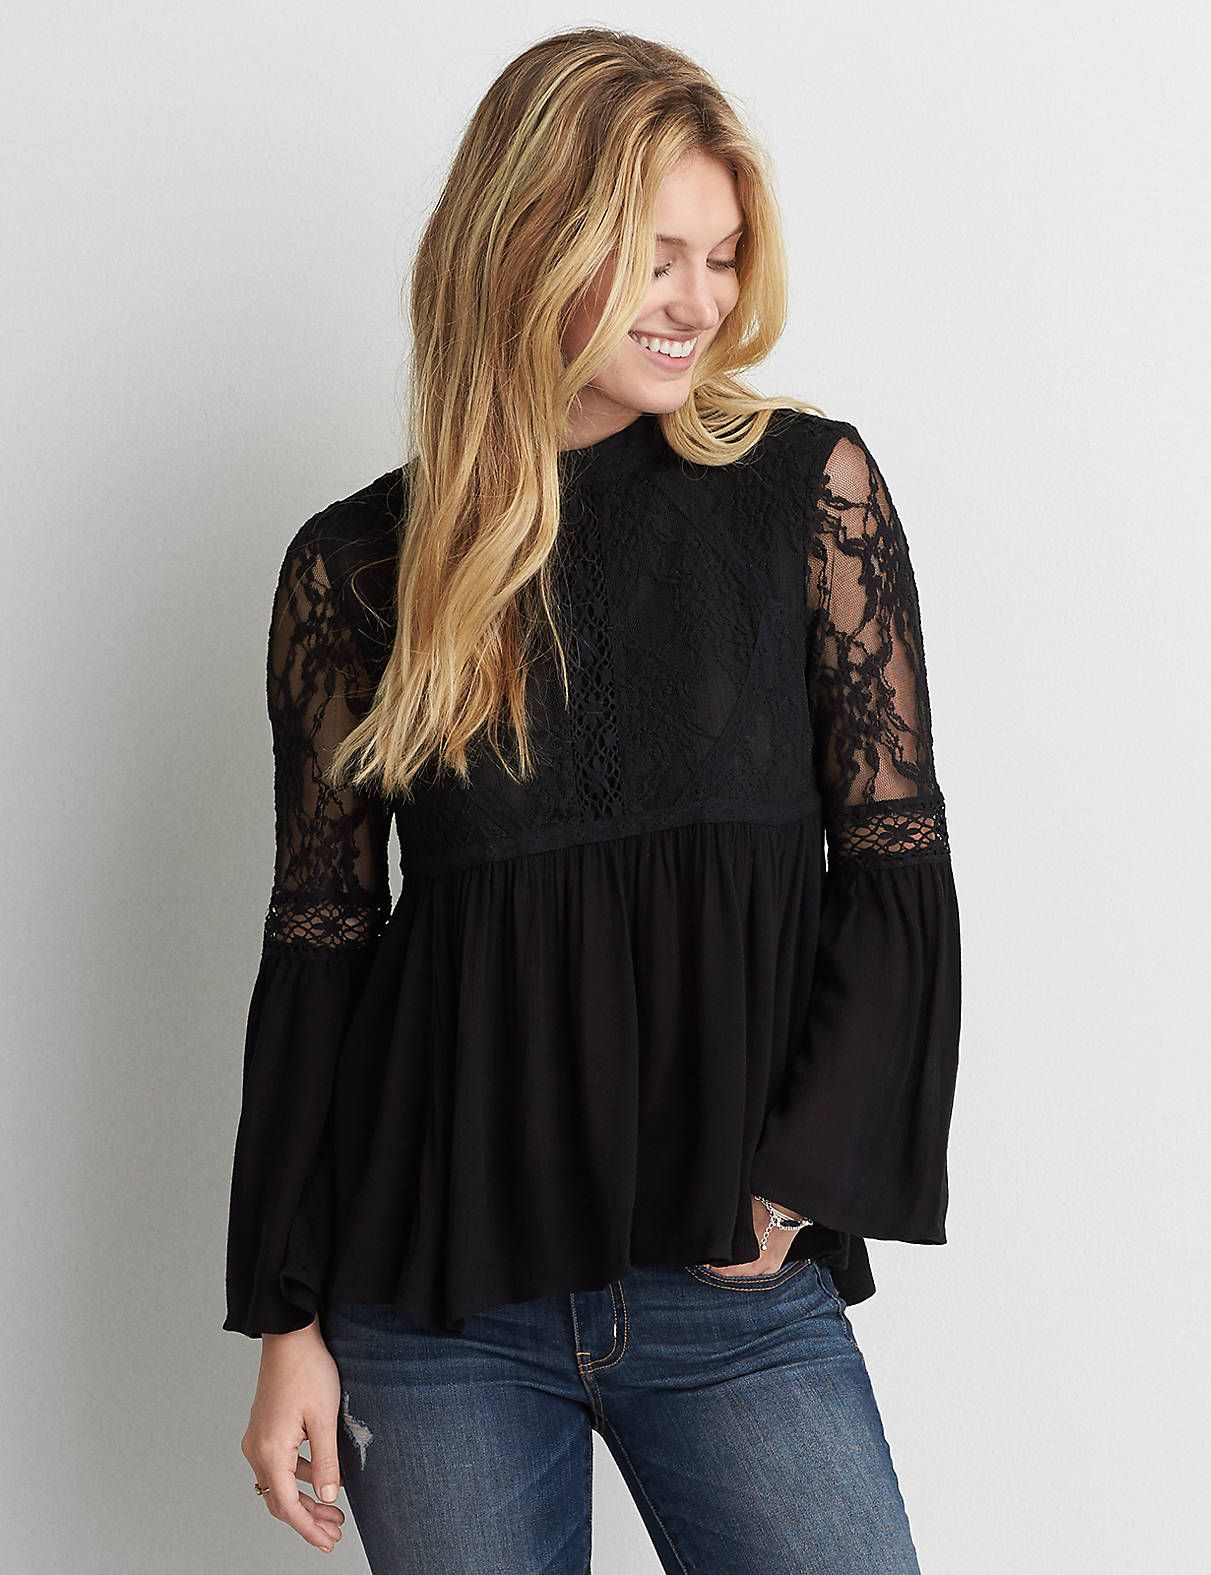 The Best From American Eagle Outfitters - Poor Little It Girl